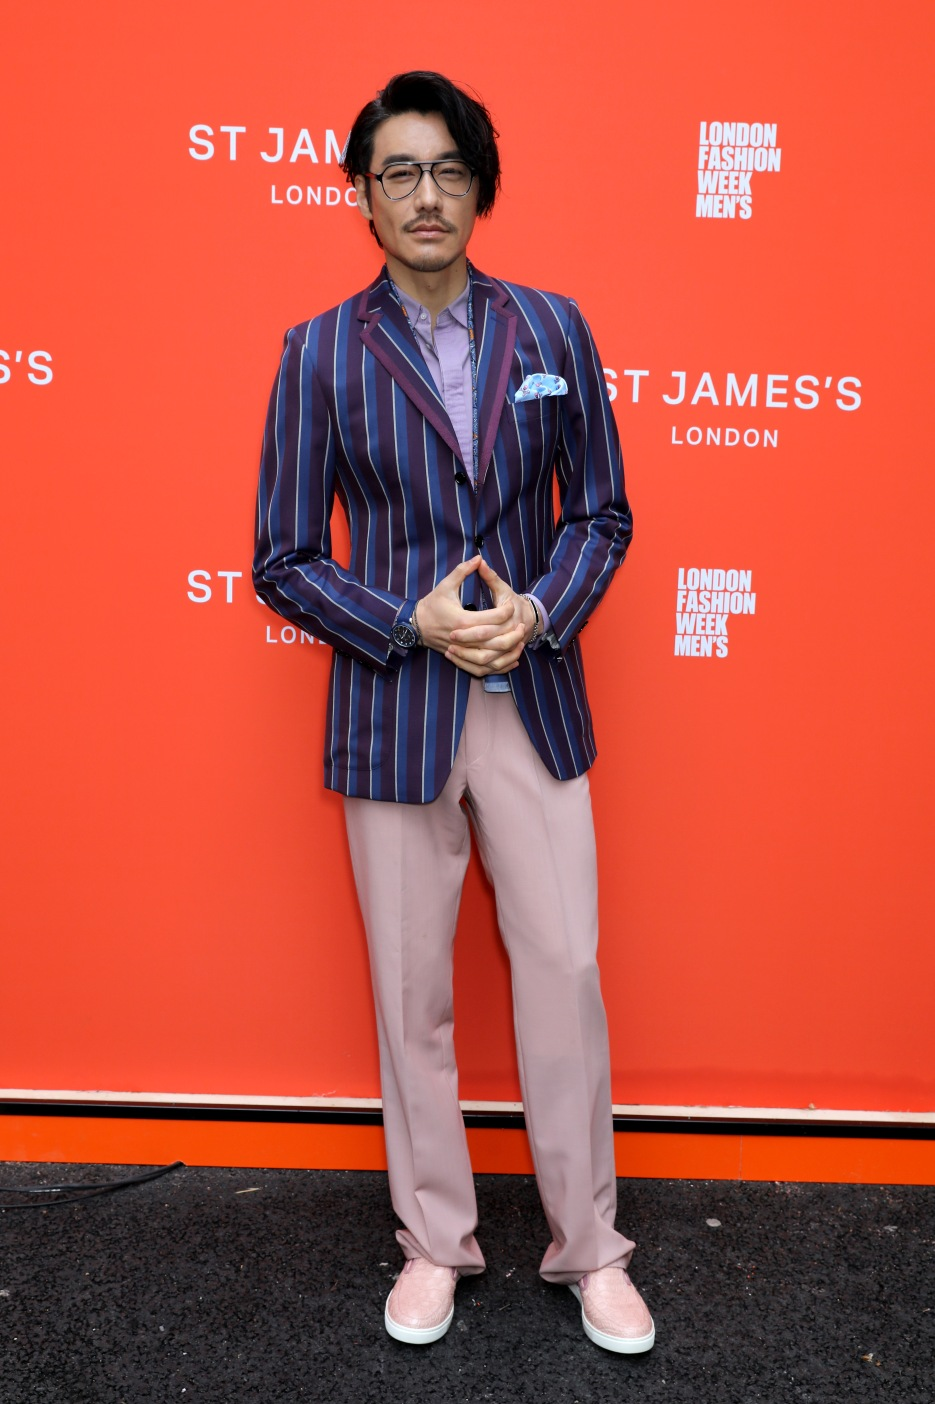 LONDON, ENGLAND - JUNE 08: Hu Bing attends St James's LFWM shows on June 08, 2019 in London, England. (Photo by David M. Benett/Dave Benett/Getty Images for St James's)